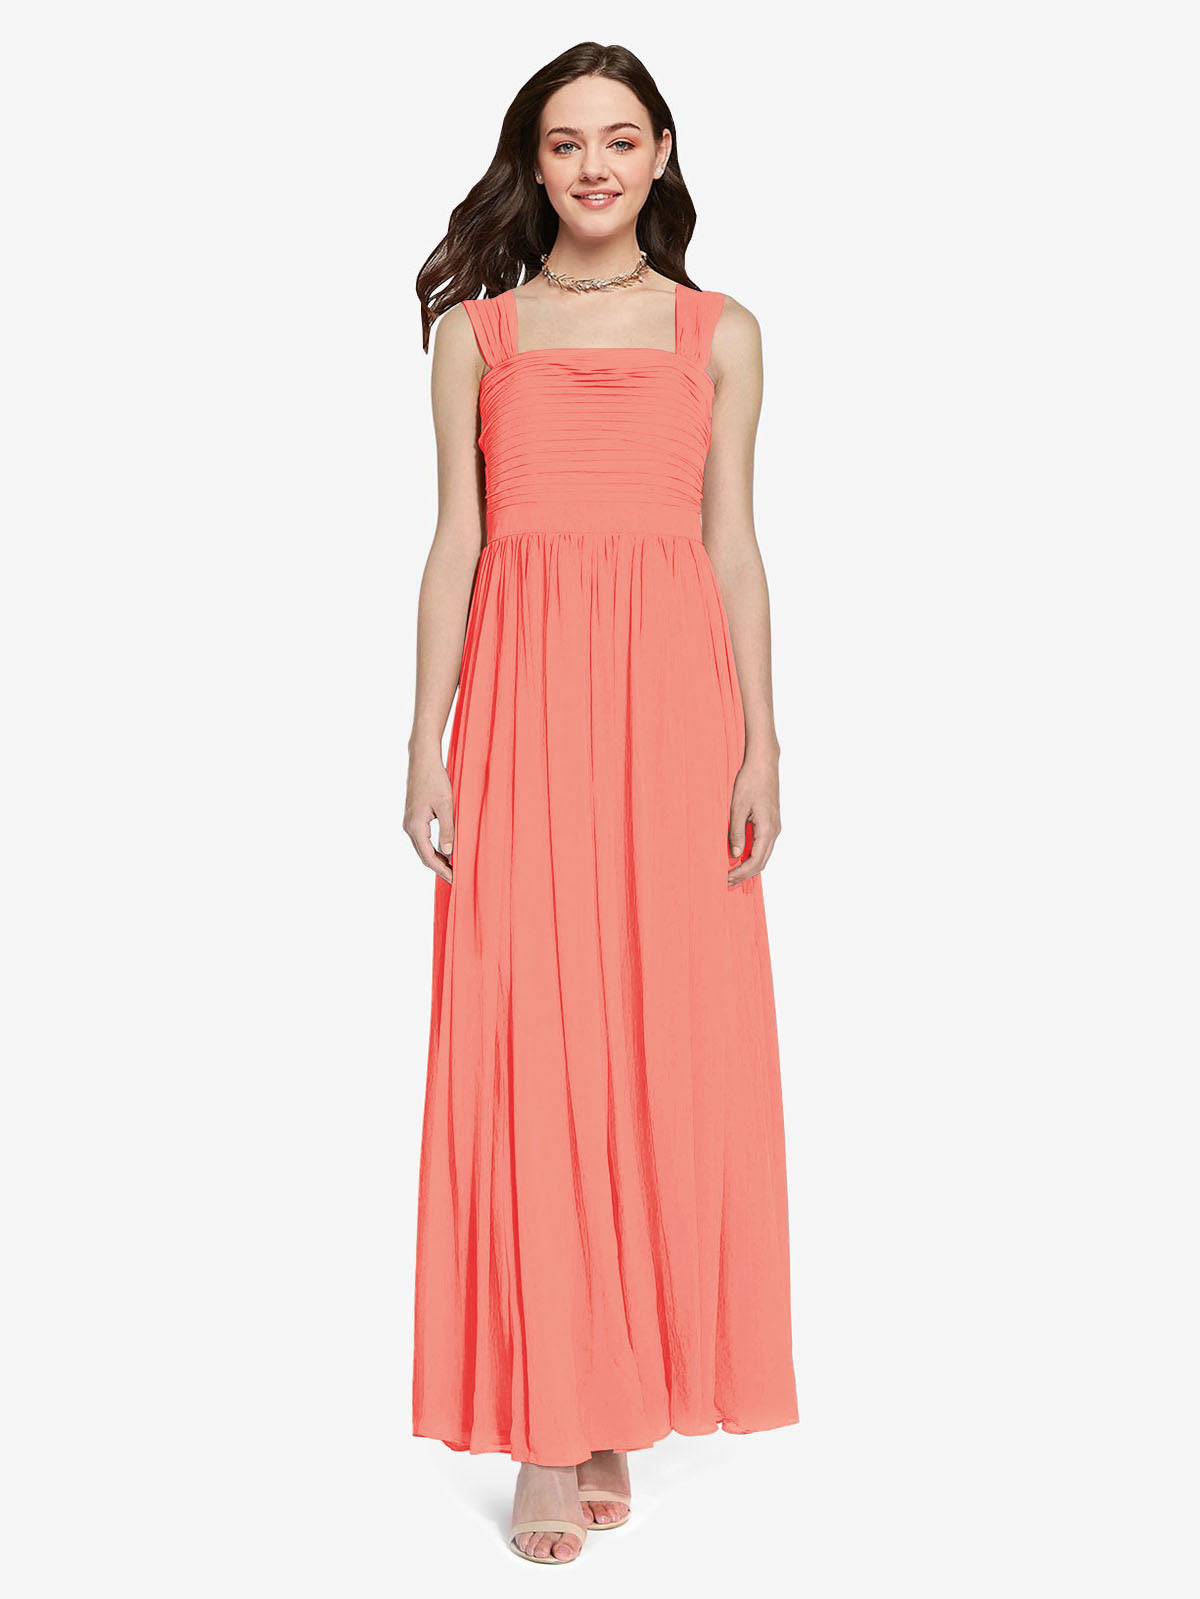 Long A-Line Square Sleeveless Coral Chiffon Bridesmaid Dress Aldridge